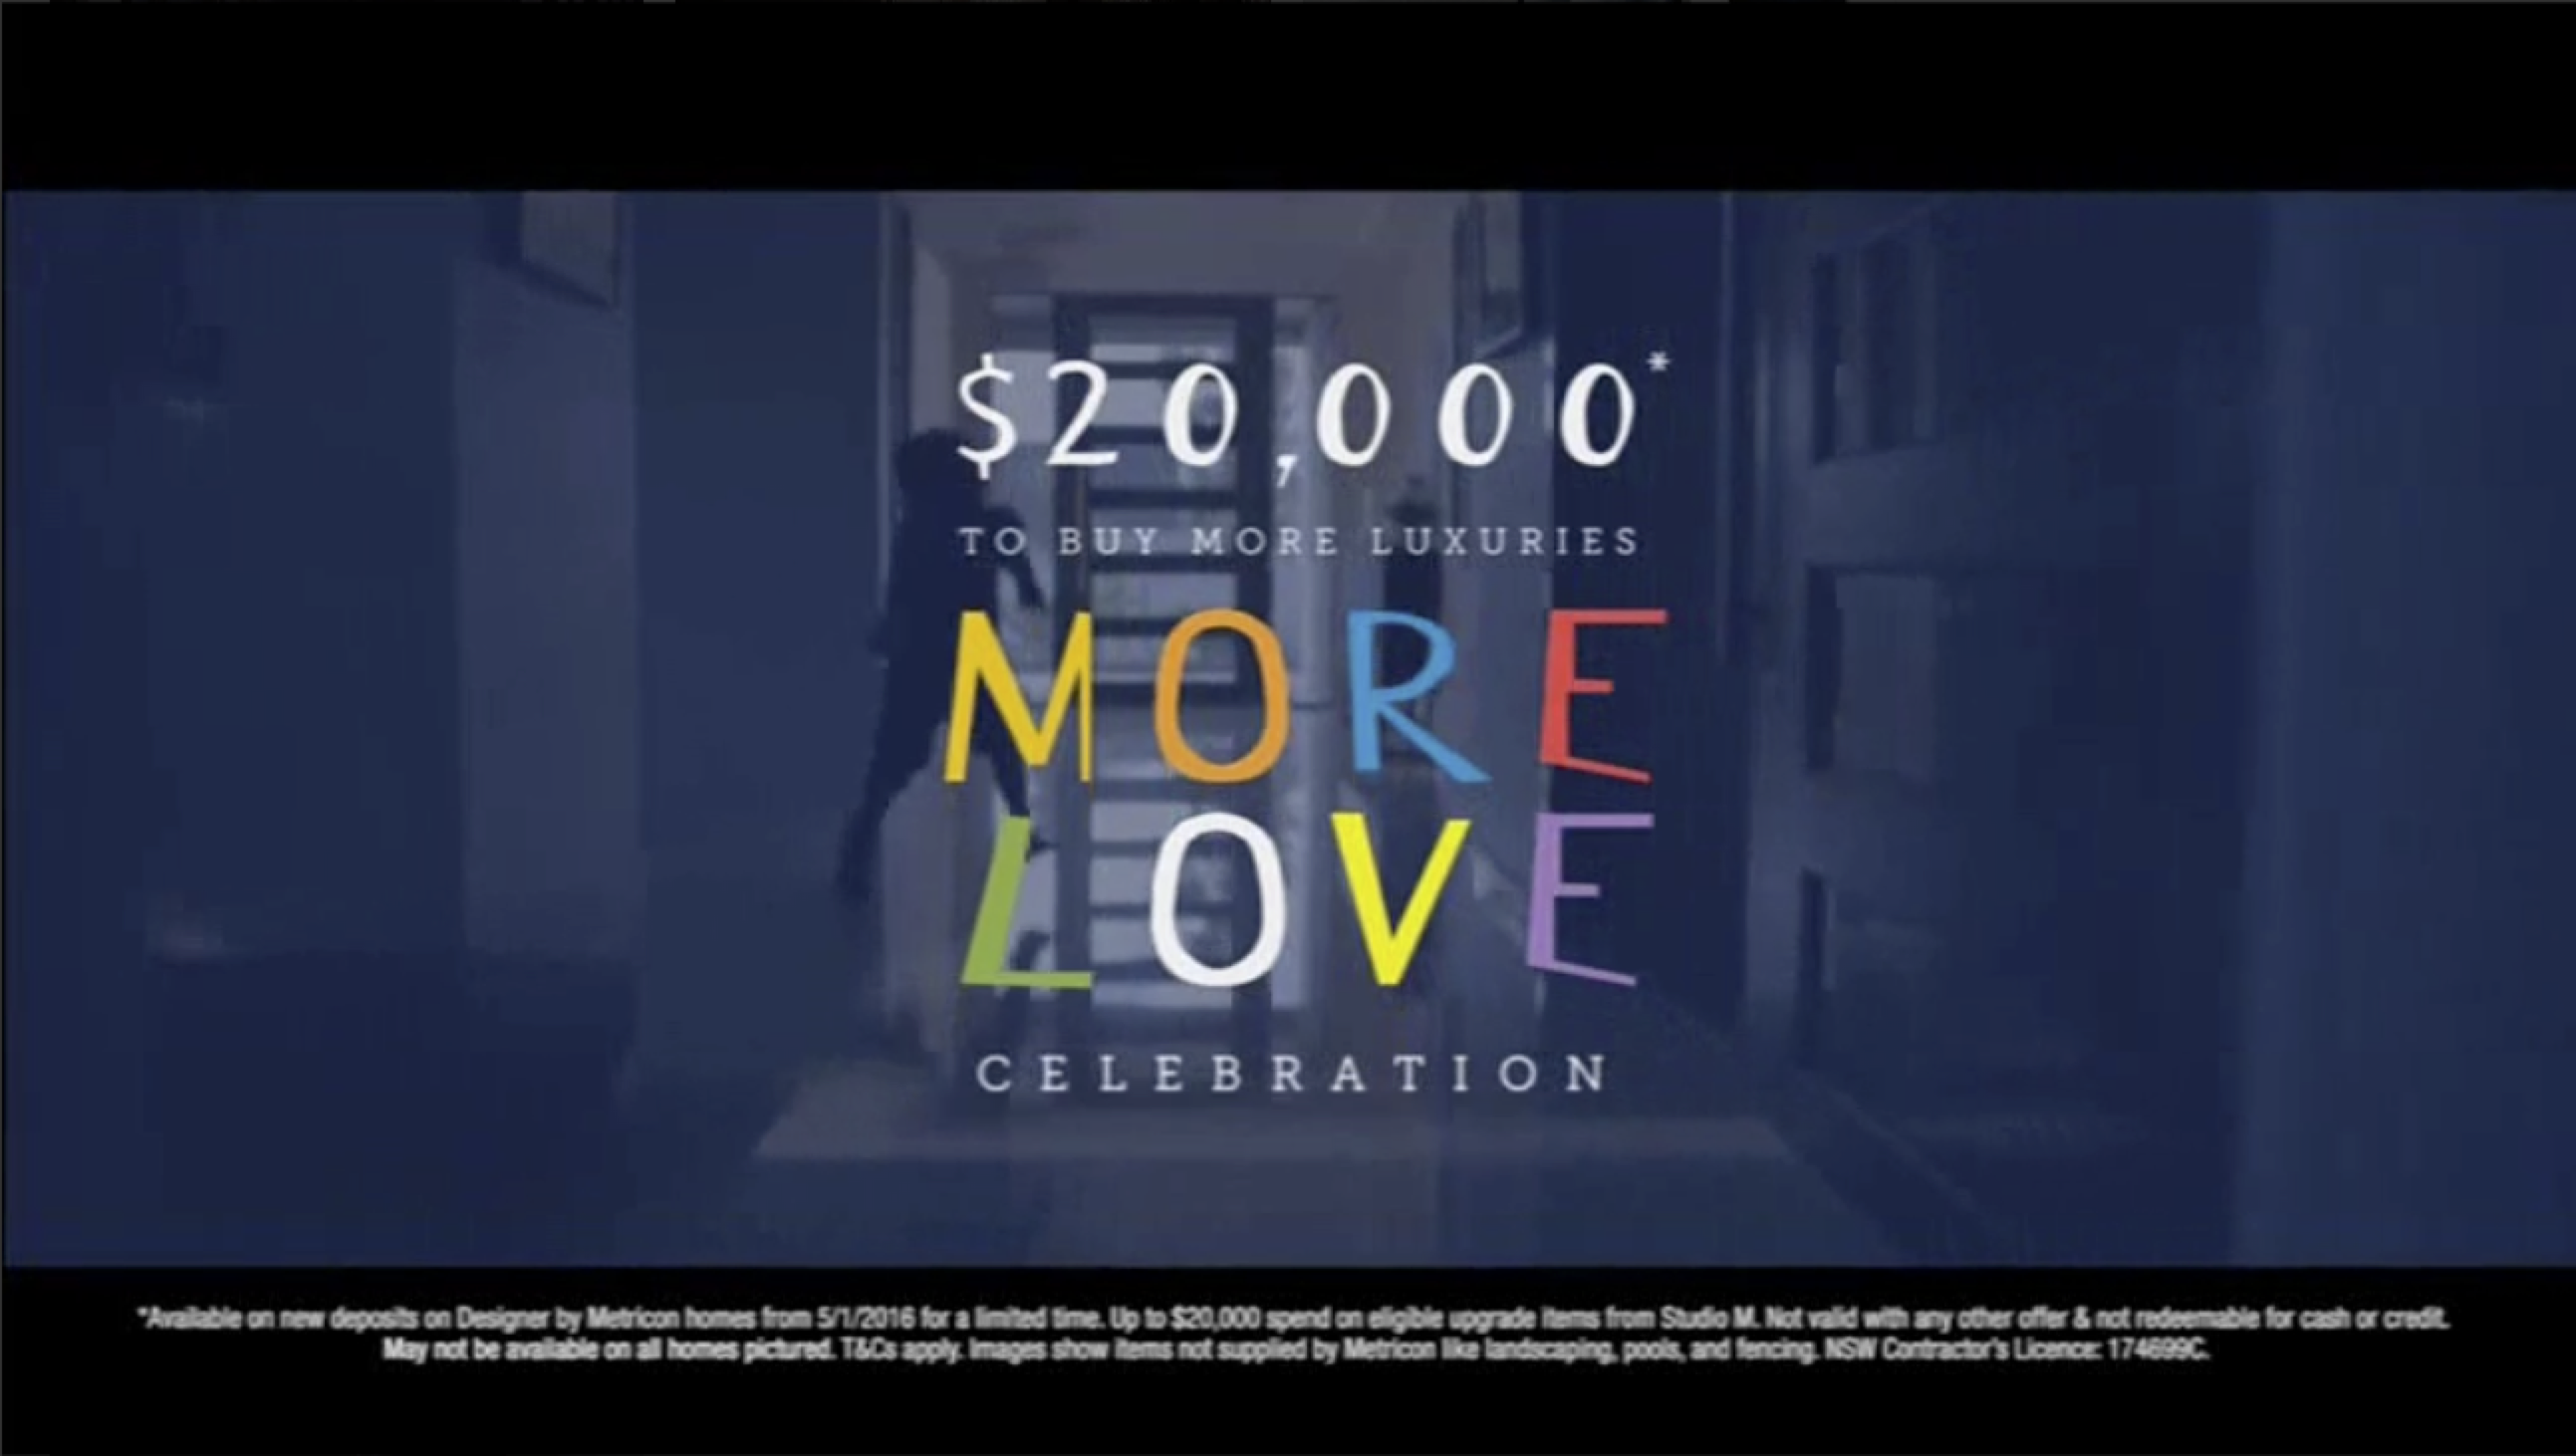 "Metricon's ""More love celebration"" campaign offered $20,000 towards extra luxuries."